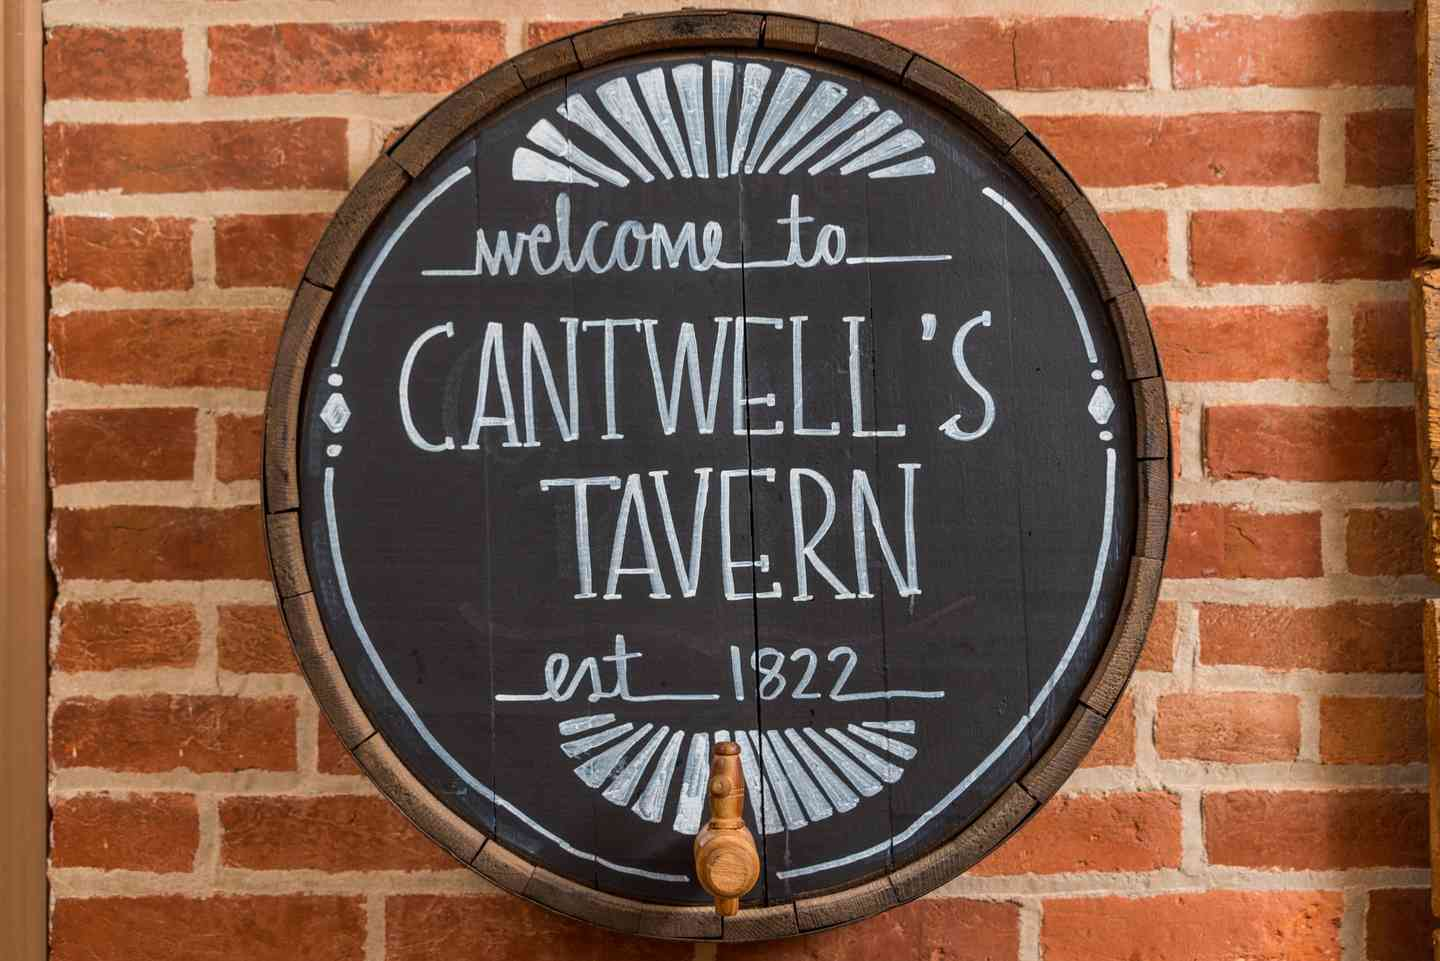 Cantwell's tavern sign